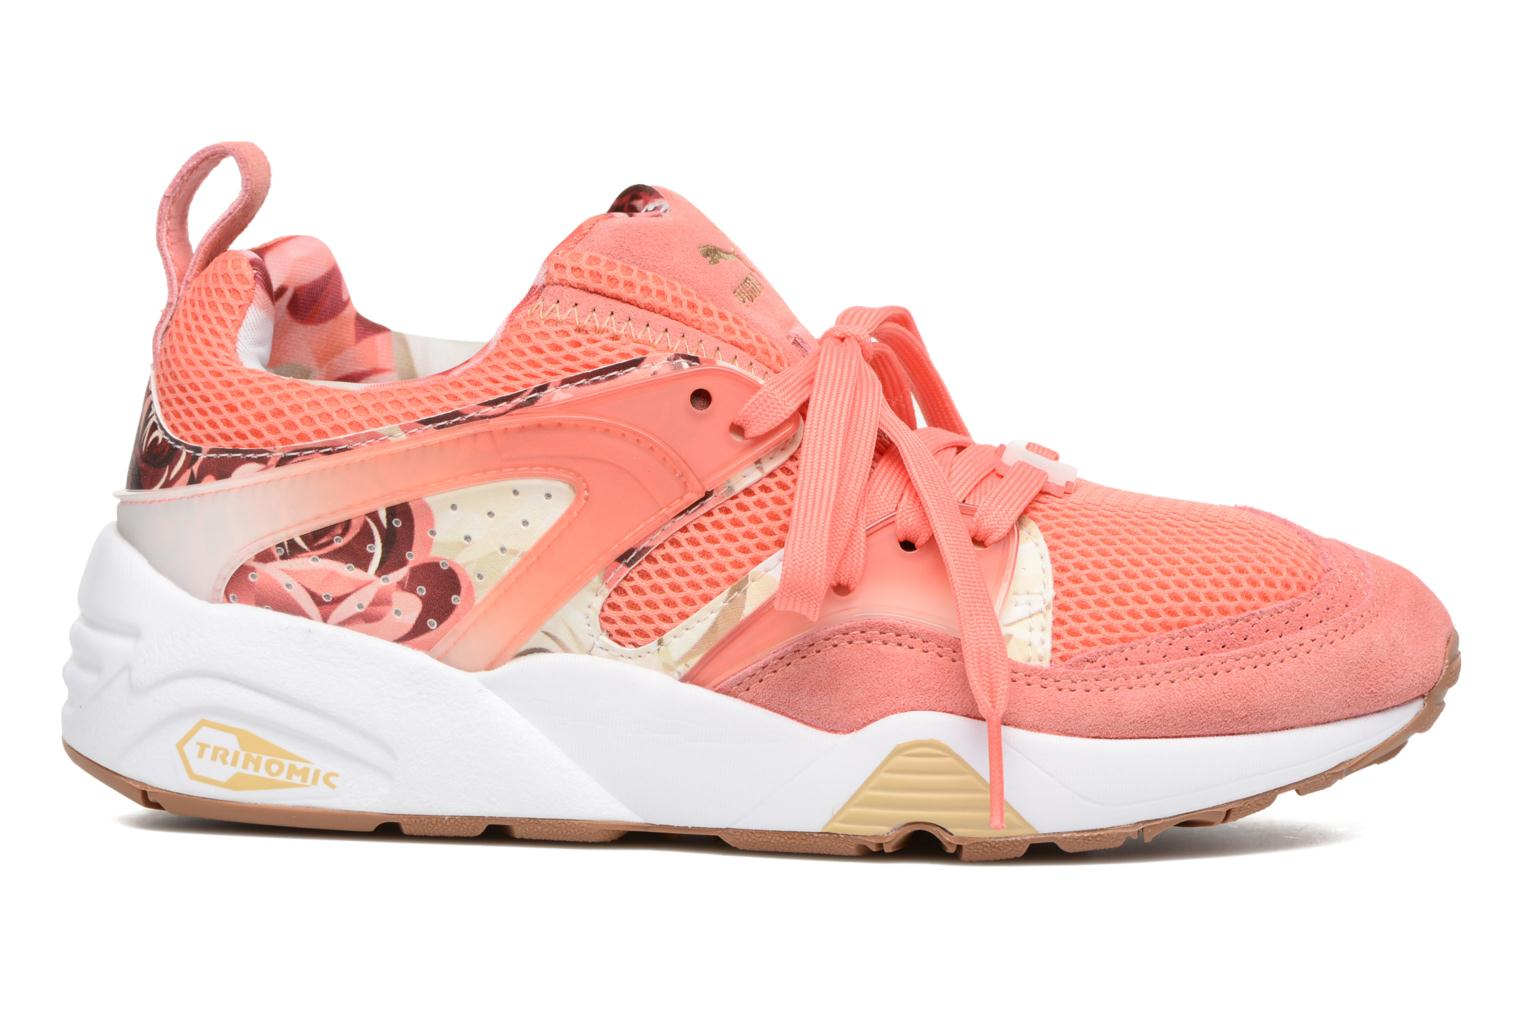 Trinomic Blaze Of Glory X Careaux Rose